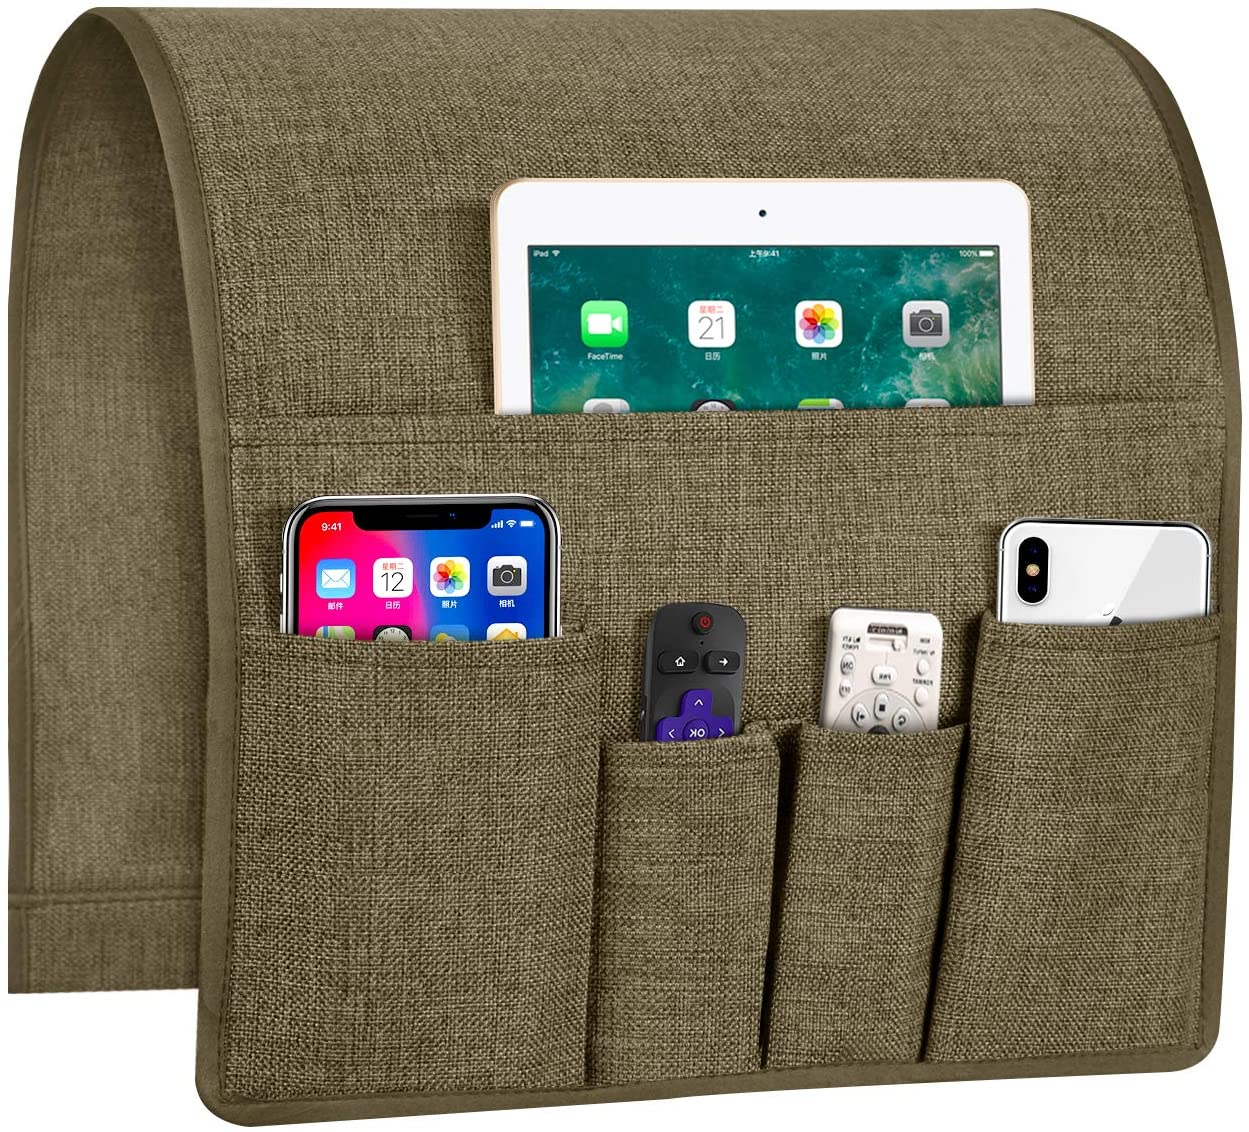 Joywell Sofa Armrest Organizer, Remote Control Holder for Recliner Couch, Arm Chair Caddy with 5 Pockets for Magazine, Tablet, Phone, iPad, Light Chocolate